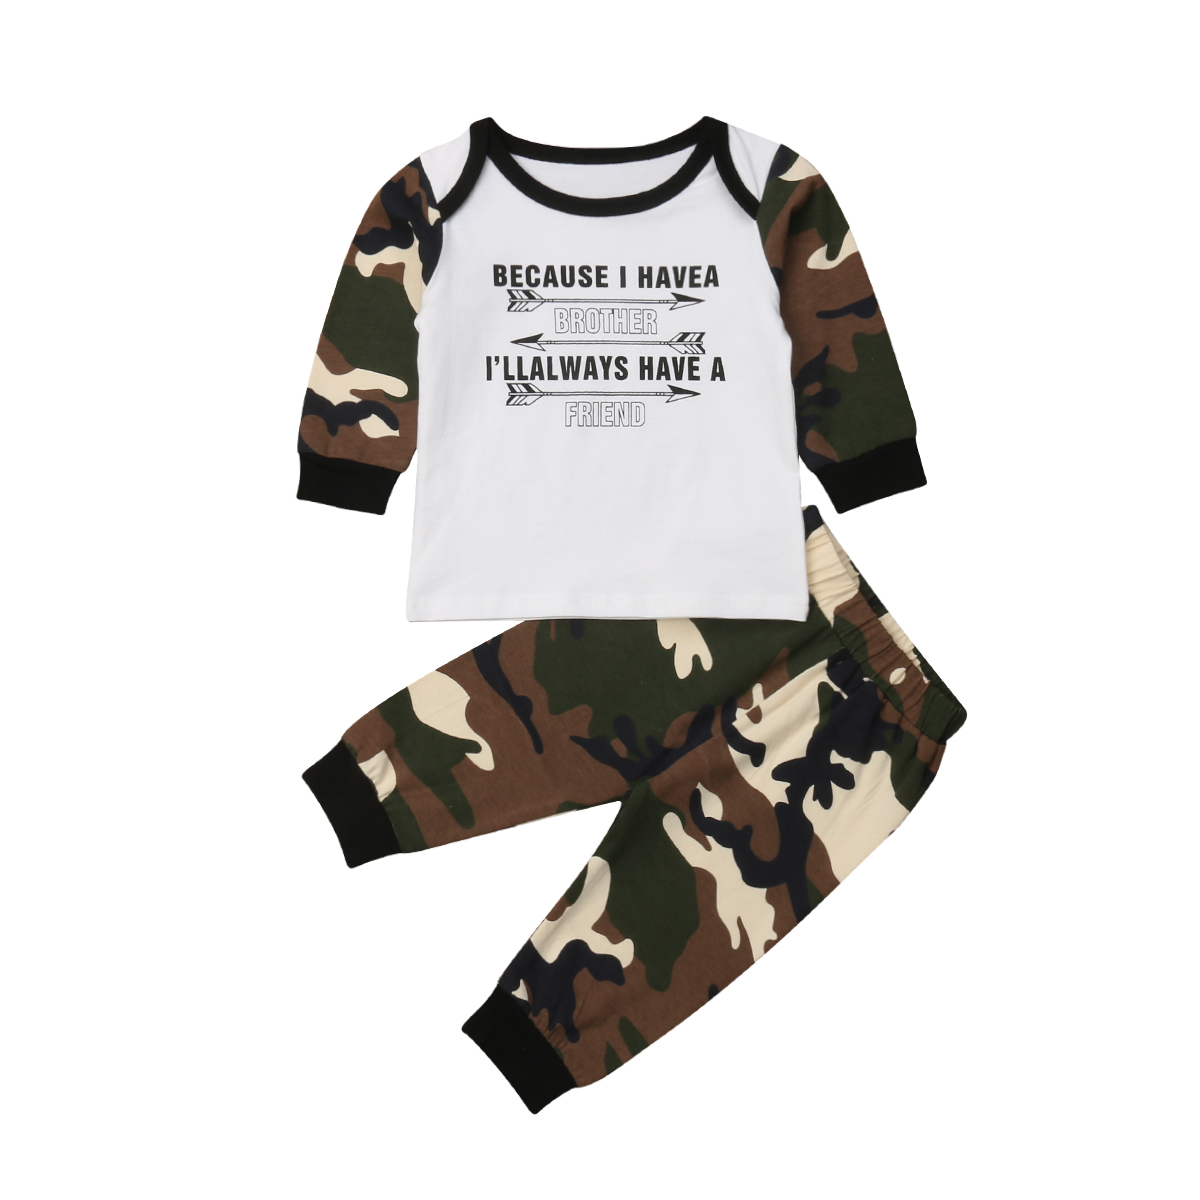 0-18M Newborn Baby Boy Clothes Long Sleeve Letter Cotton T-shirt Tops Camouflage Pant 2PCS Tracksuit Clothing Set